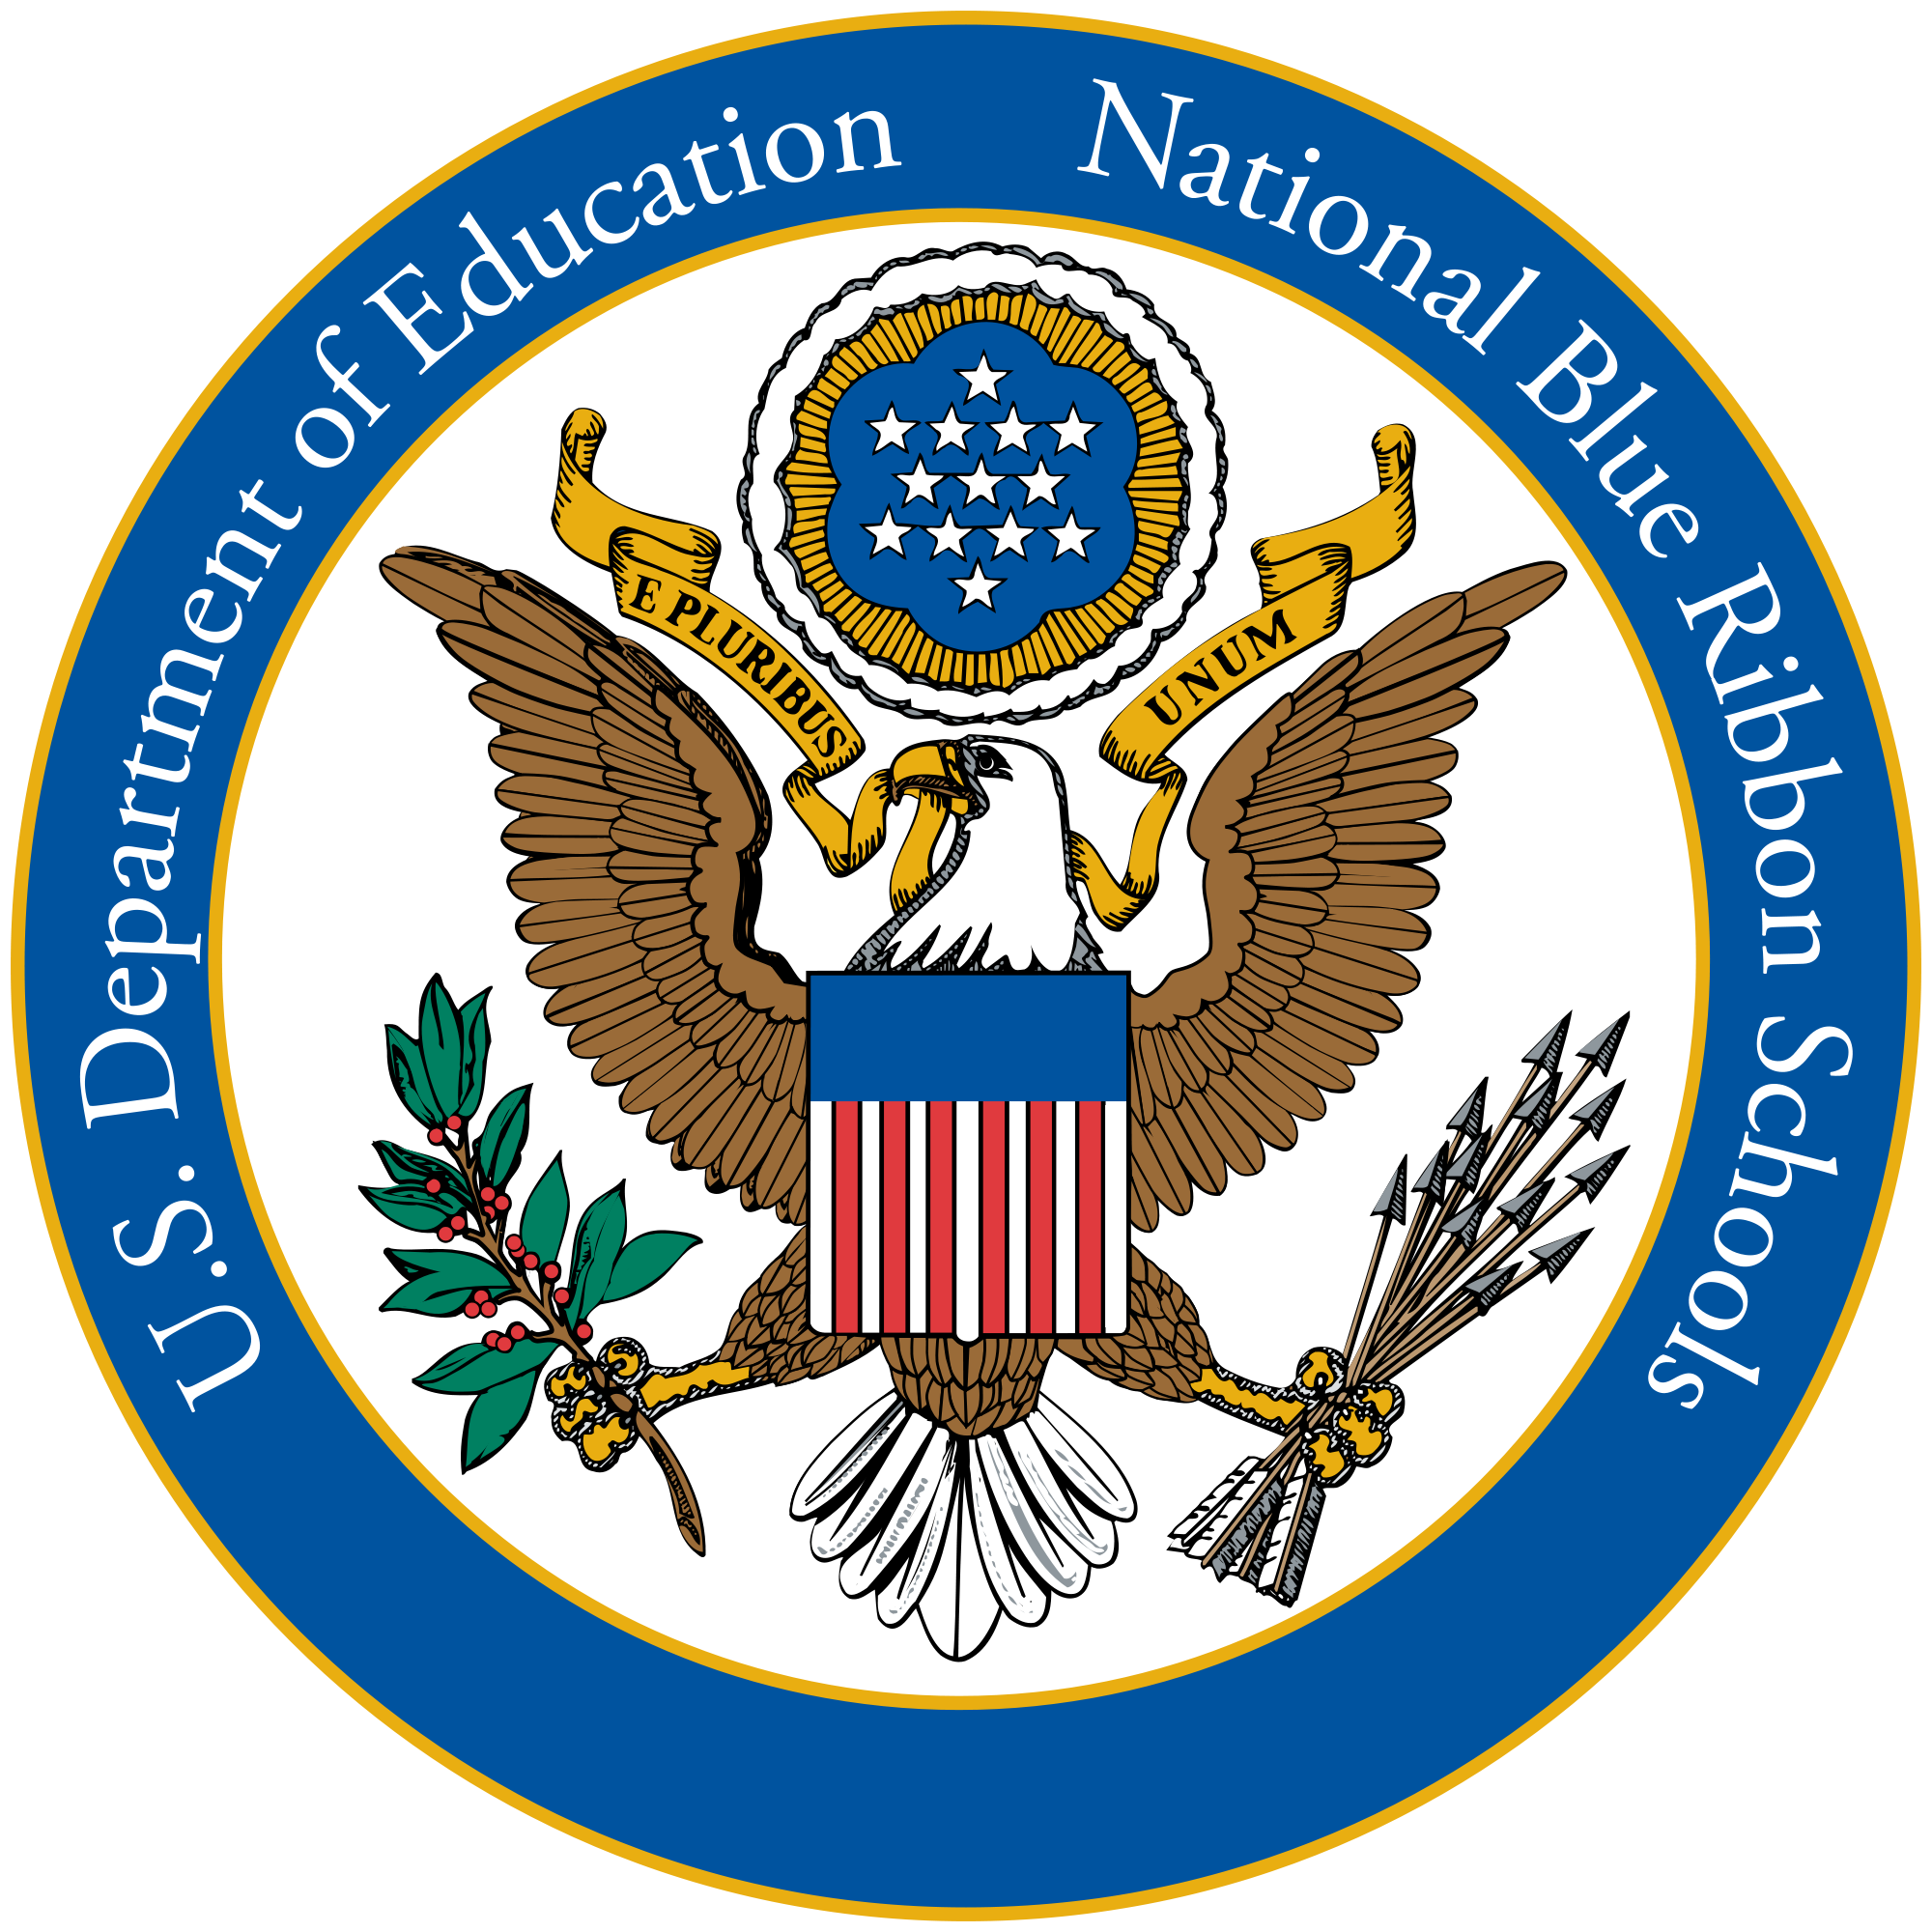 The Dunham School National Blue Ribbon School